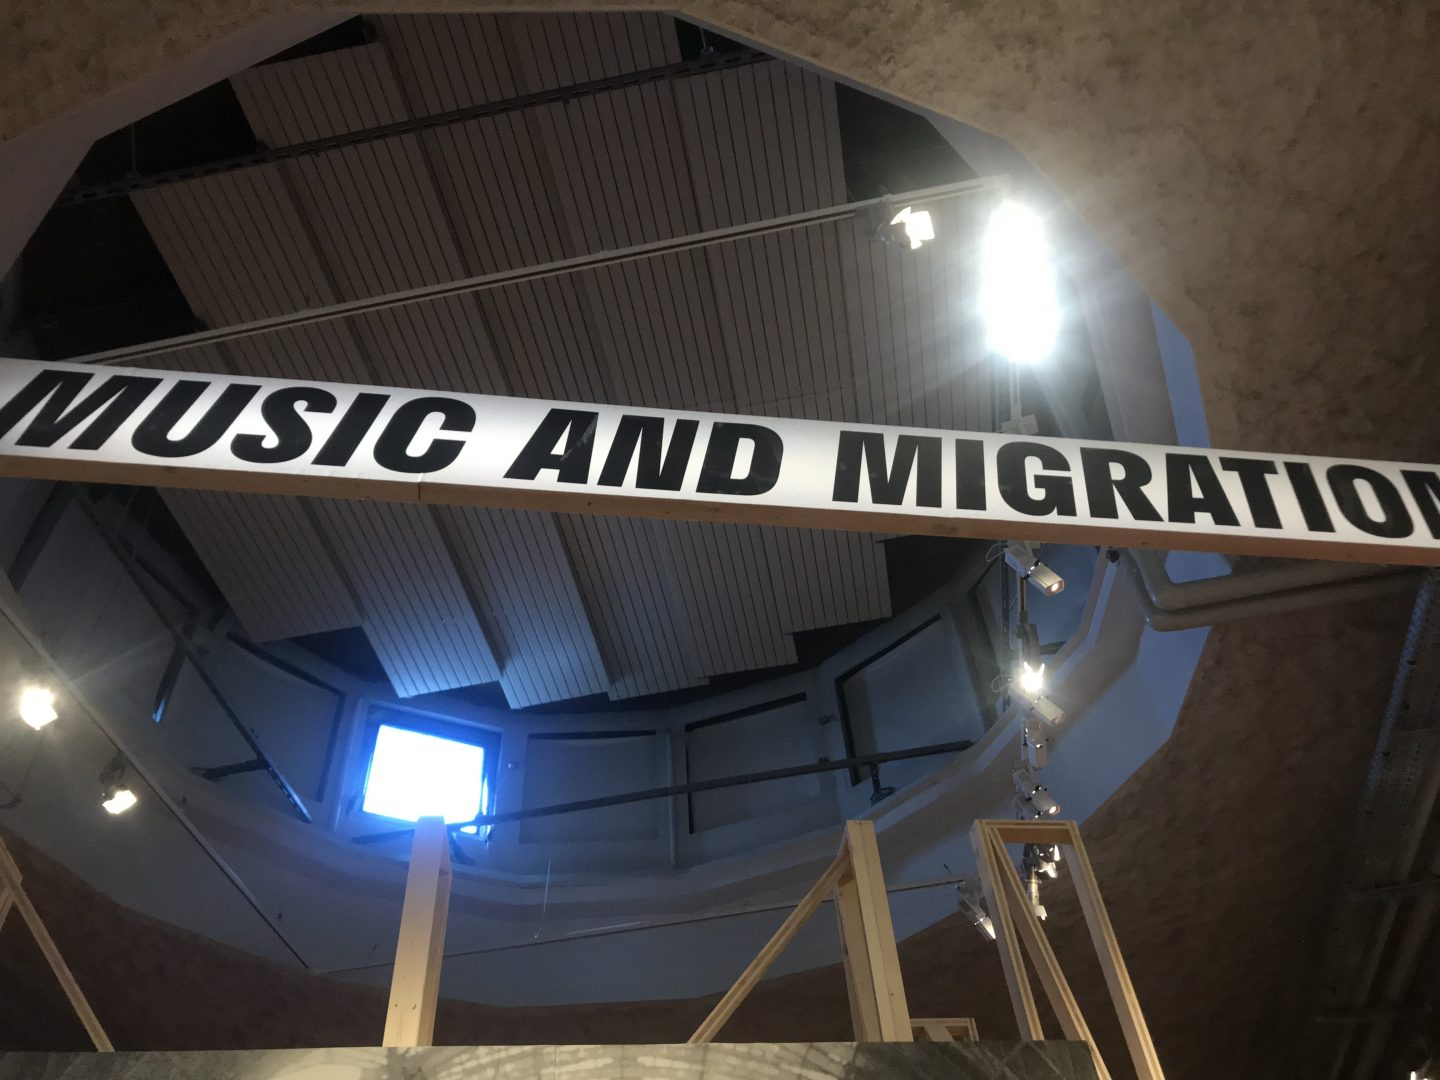 MUSIC AND MIGRATION